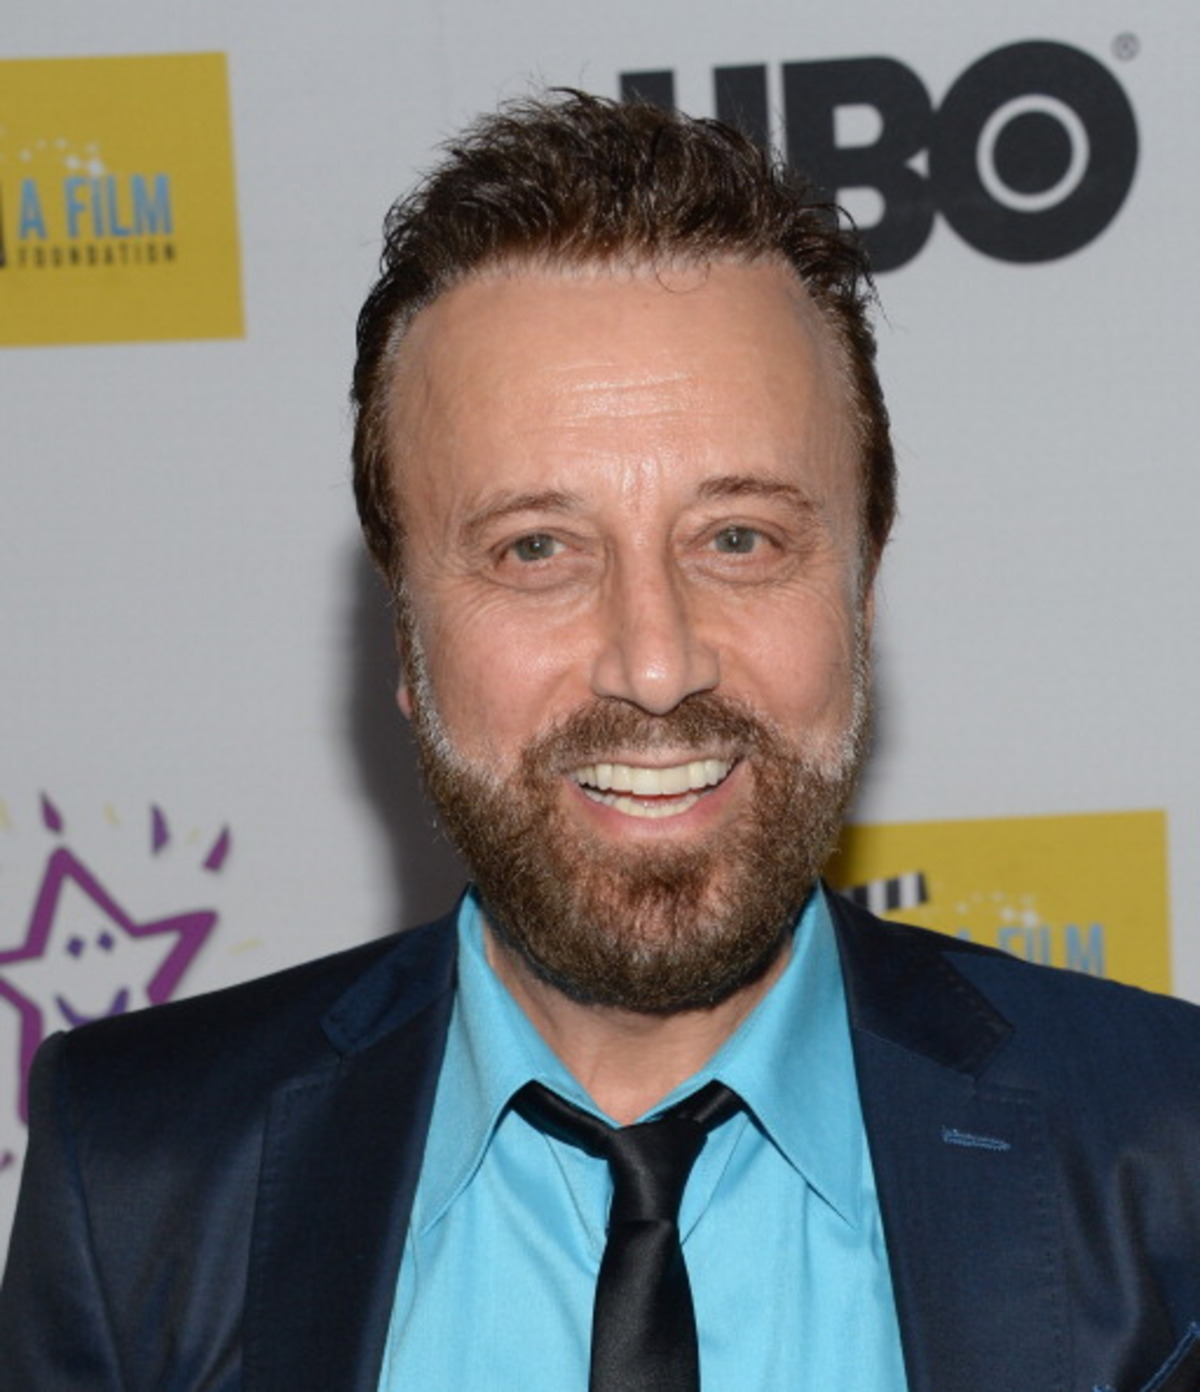 The 70-year old son of father (?) and mother(?) Yakov Smirnoff in 2021 photo. Yakov Smirnoff earned a  million dollar salary - leaving the net worth at  million in 2021